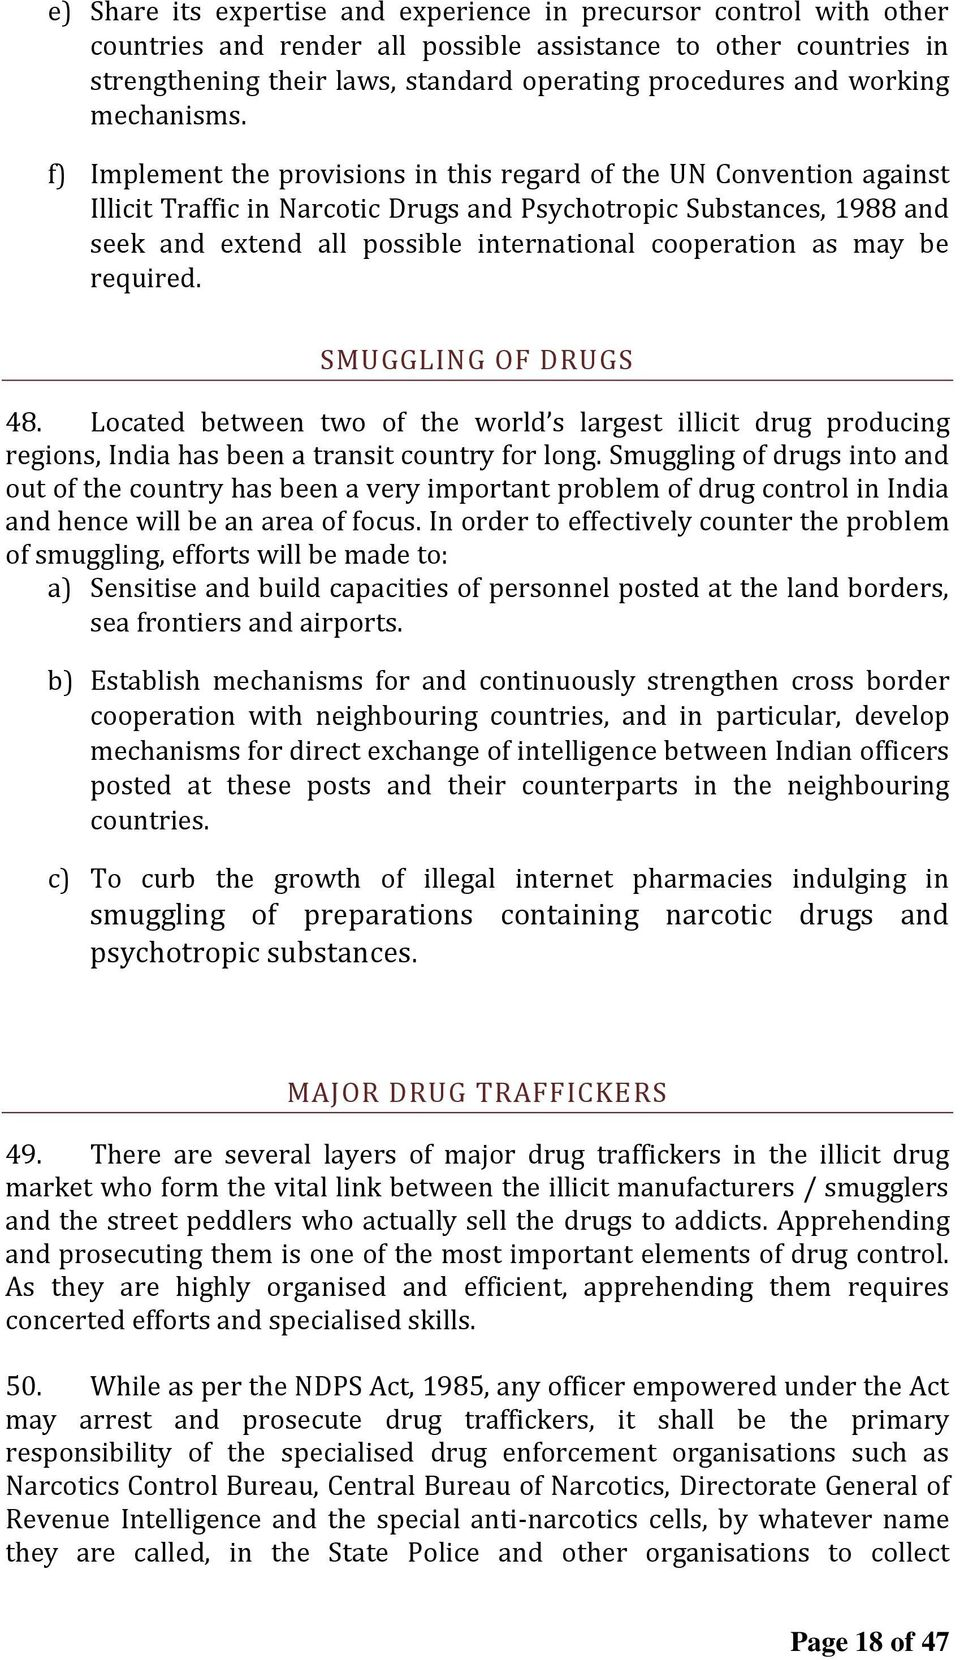 f) Implement the provisions in this regard of the UN Convention against Illicit Traffic in Narcotic Drugs and Psychotropic Substances, 1988 and seek and extend all possible international cooperation